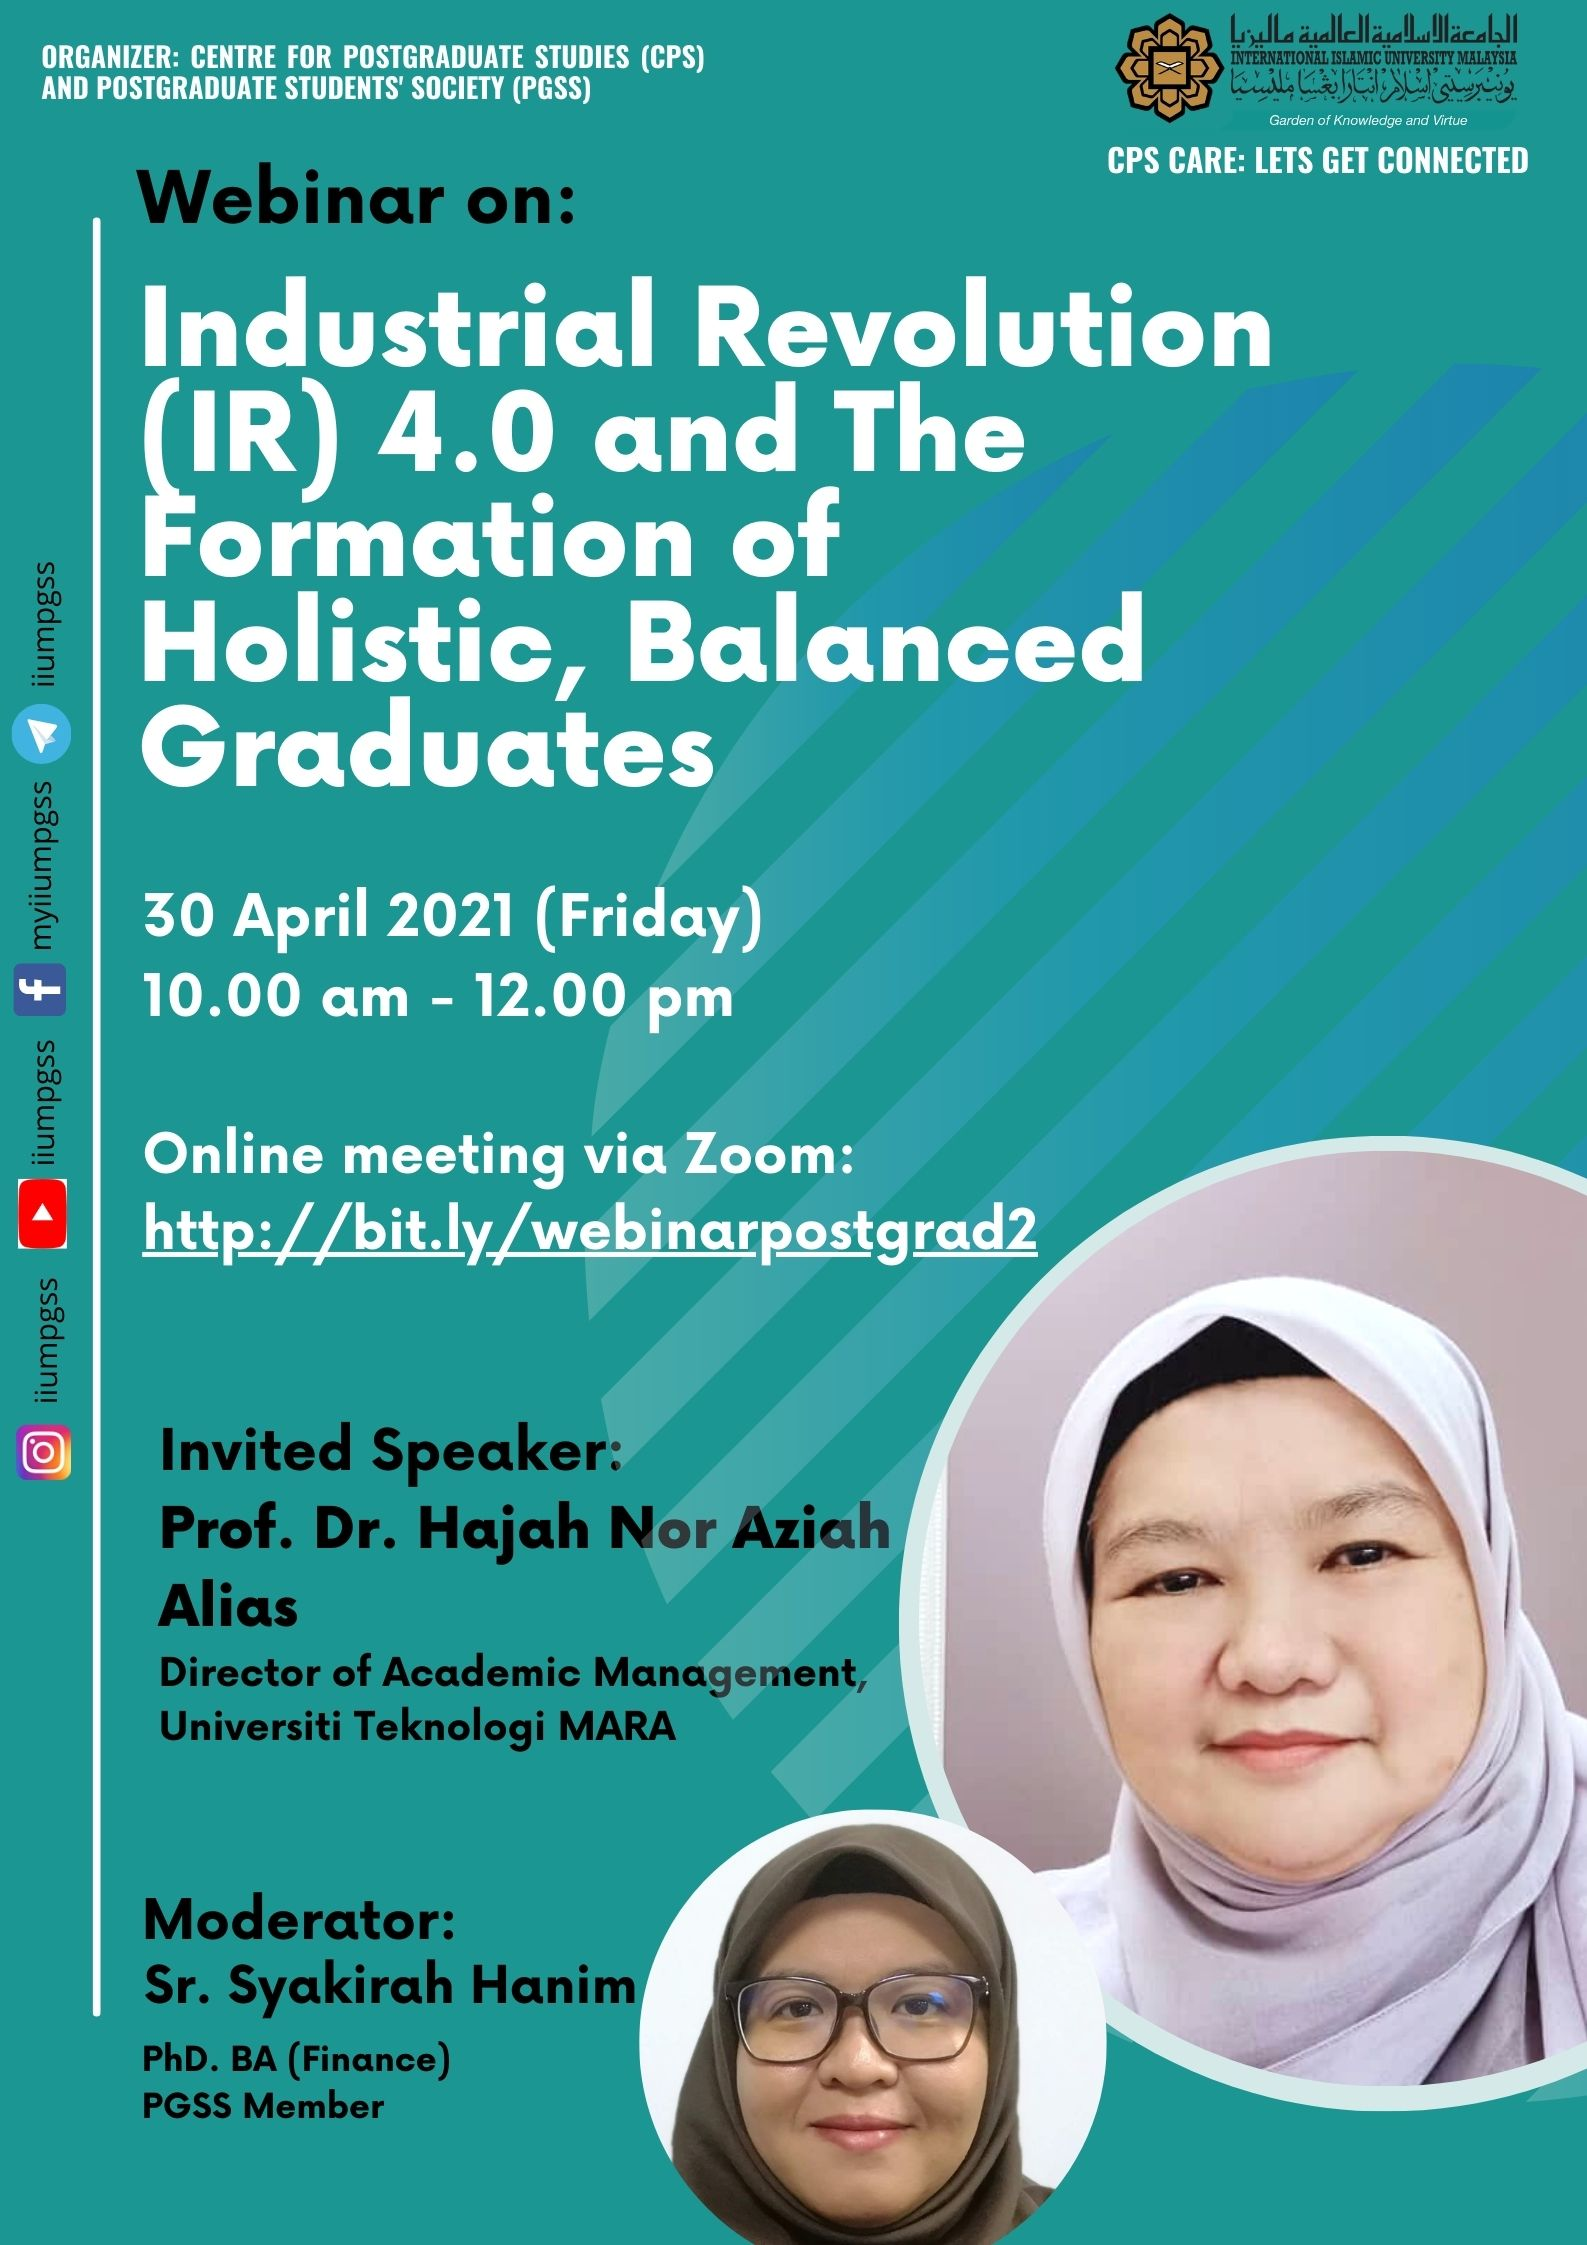 INVITATION TO ATTEND WEBINAR ON: INDUSTRIAL REVOLUTION (IR) 4.0 AND THE FORMATION OF HOLISTIC, BALANCED GRADUATES